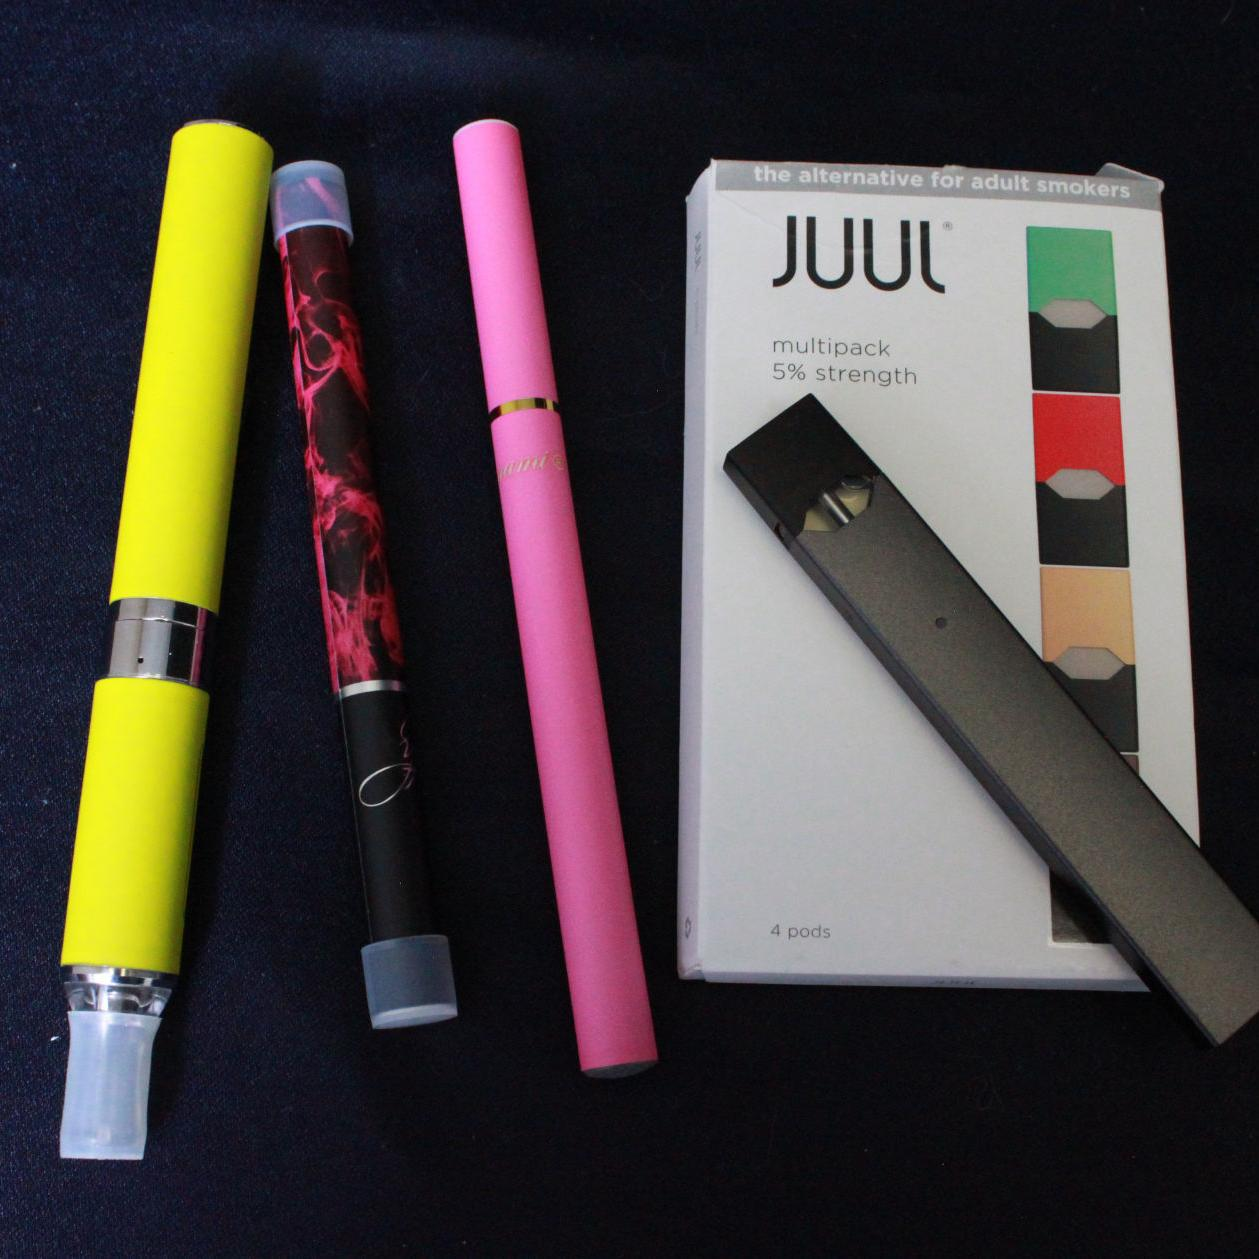 Gazette opinion: Don't be fooled by Juul | Editorial